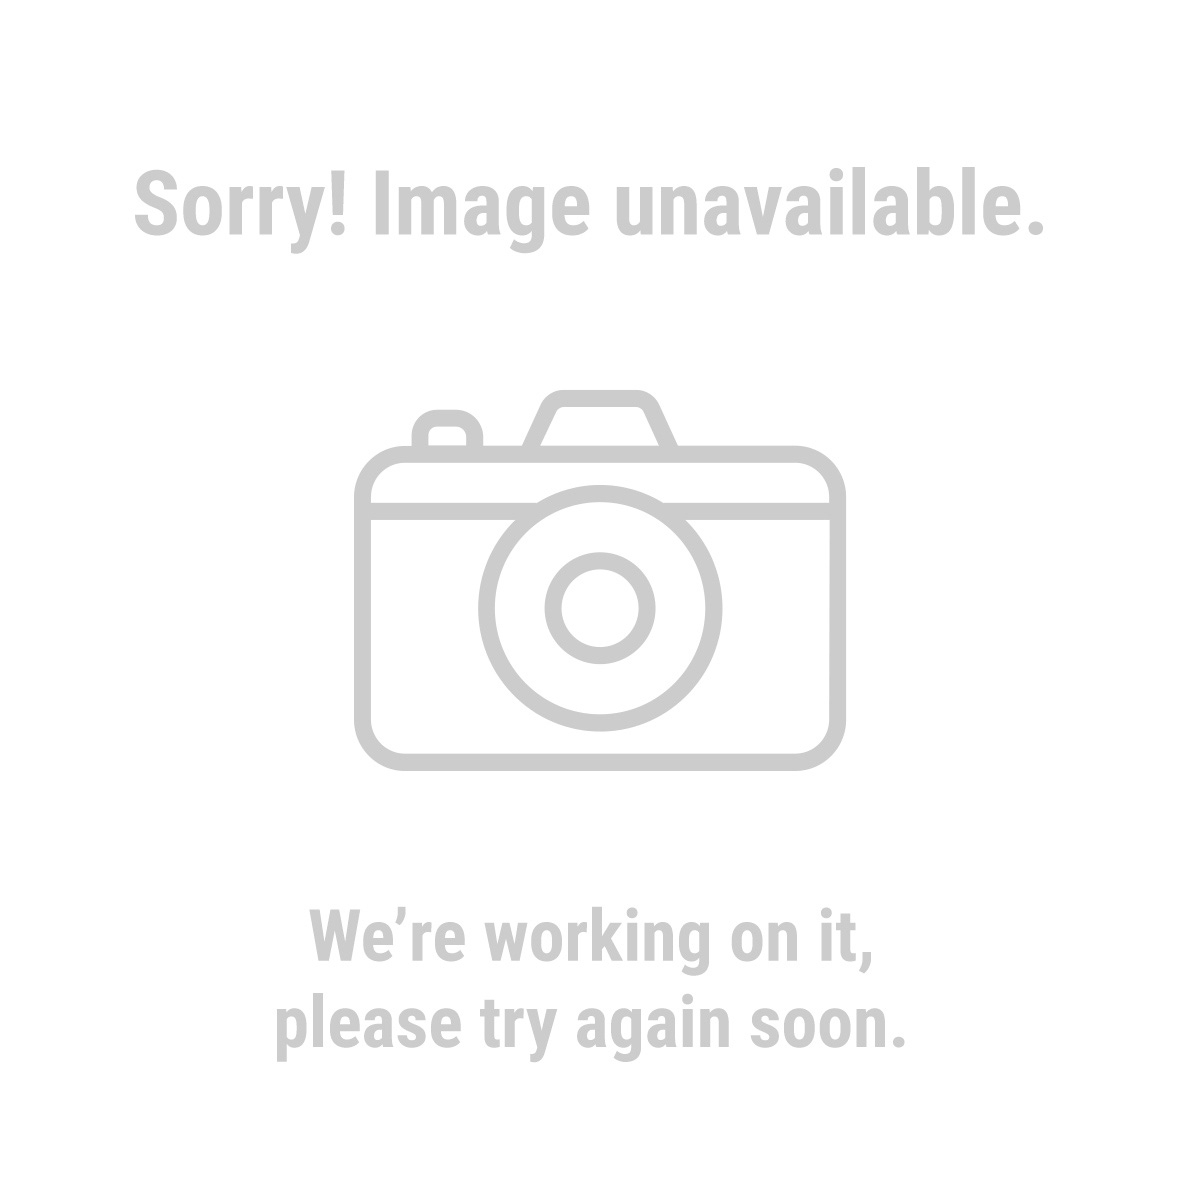 HFT® 69125 11 ft. 4 in. x 17 ft. 6 in. Blue All Purpose/Weather Resistant Tarp